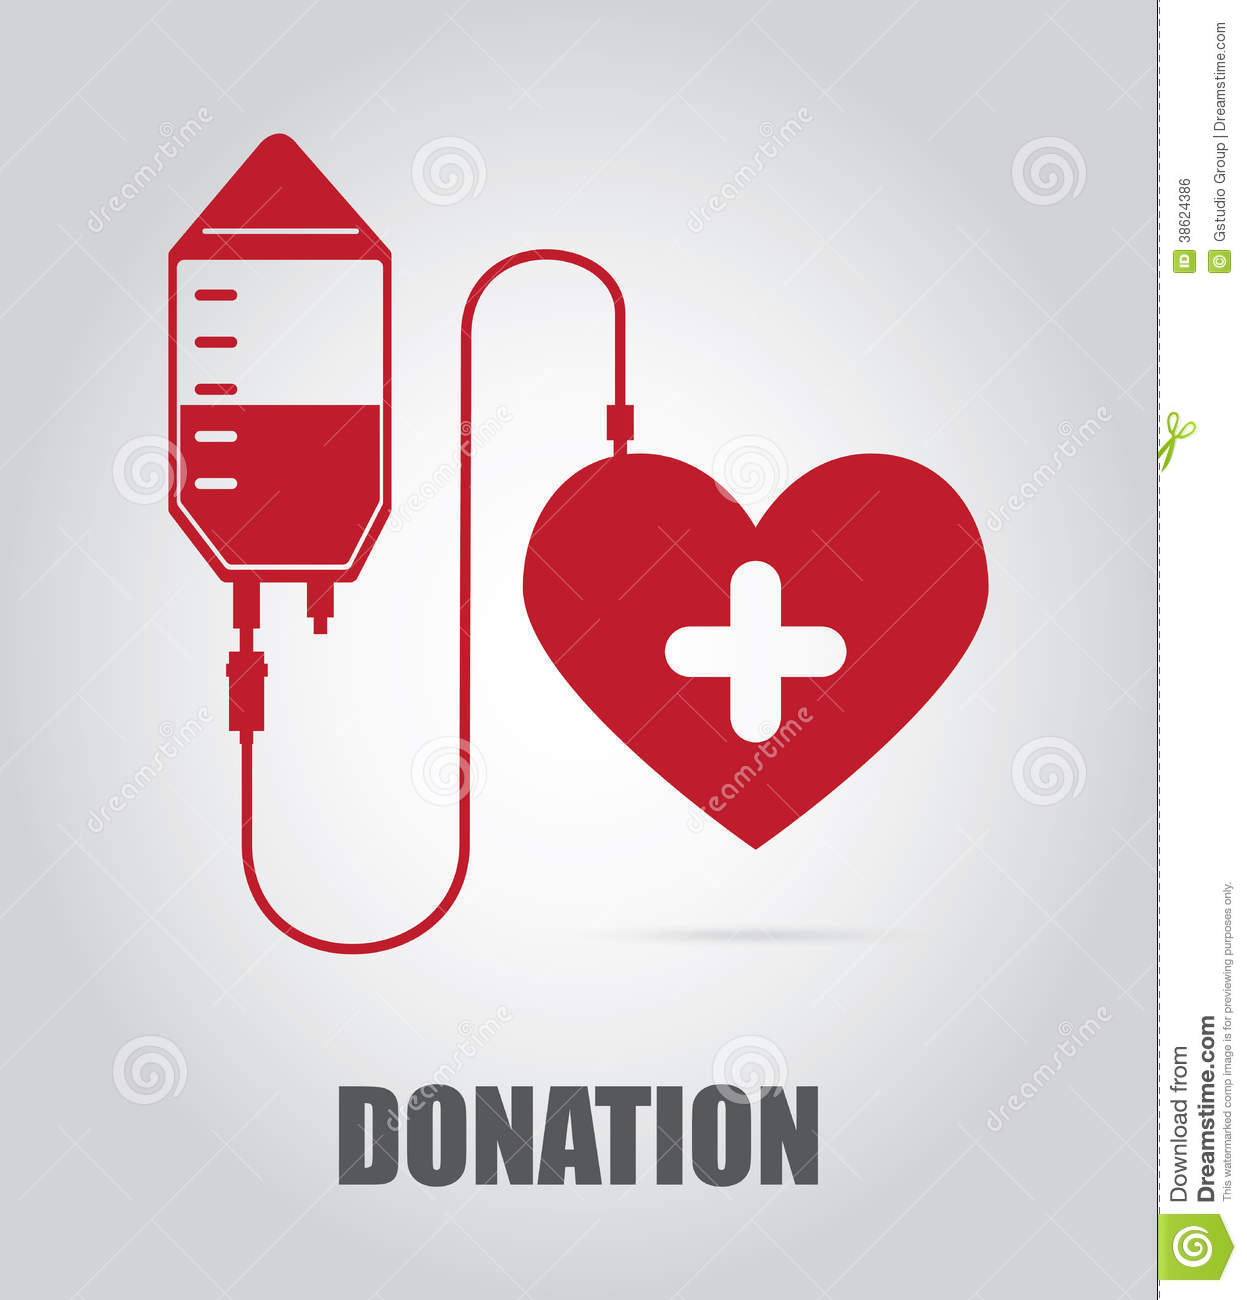 Poster design on blood donation - Donate Blood Design Royalty Free Stock Image